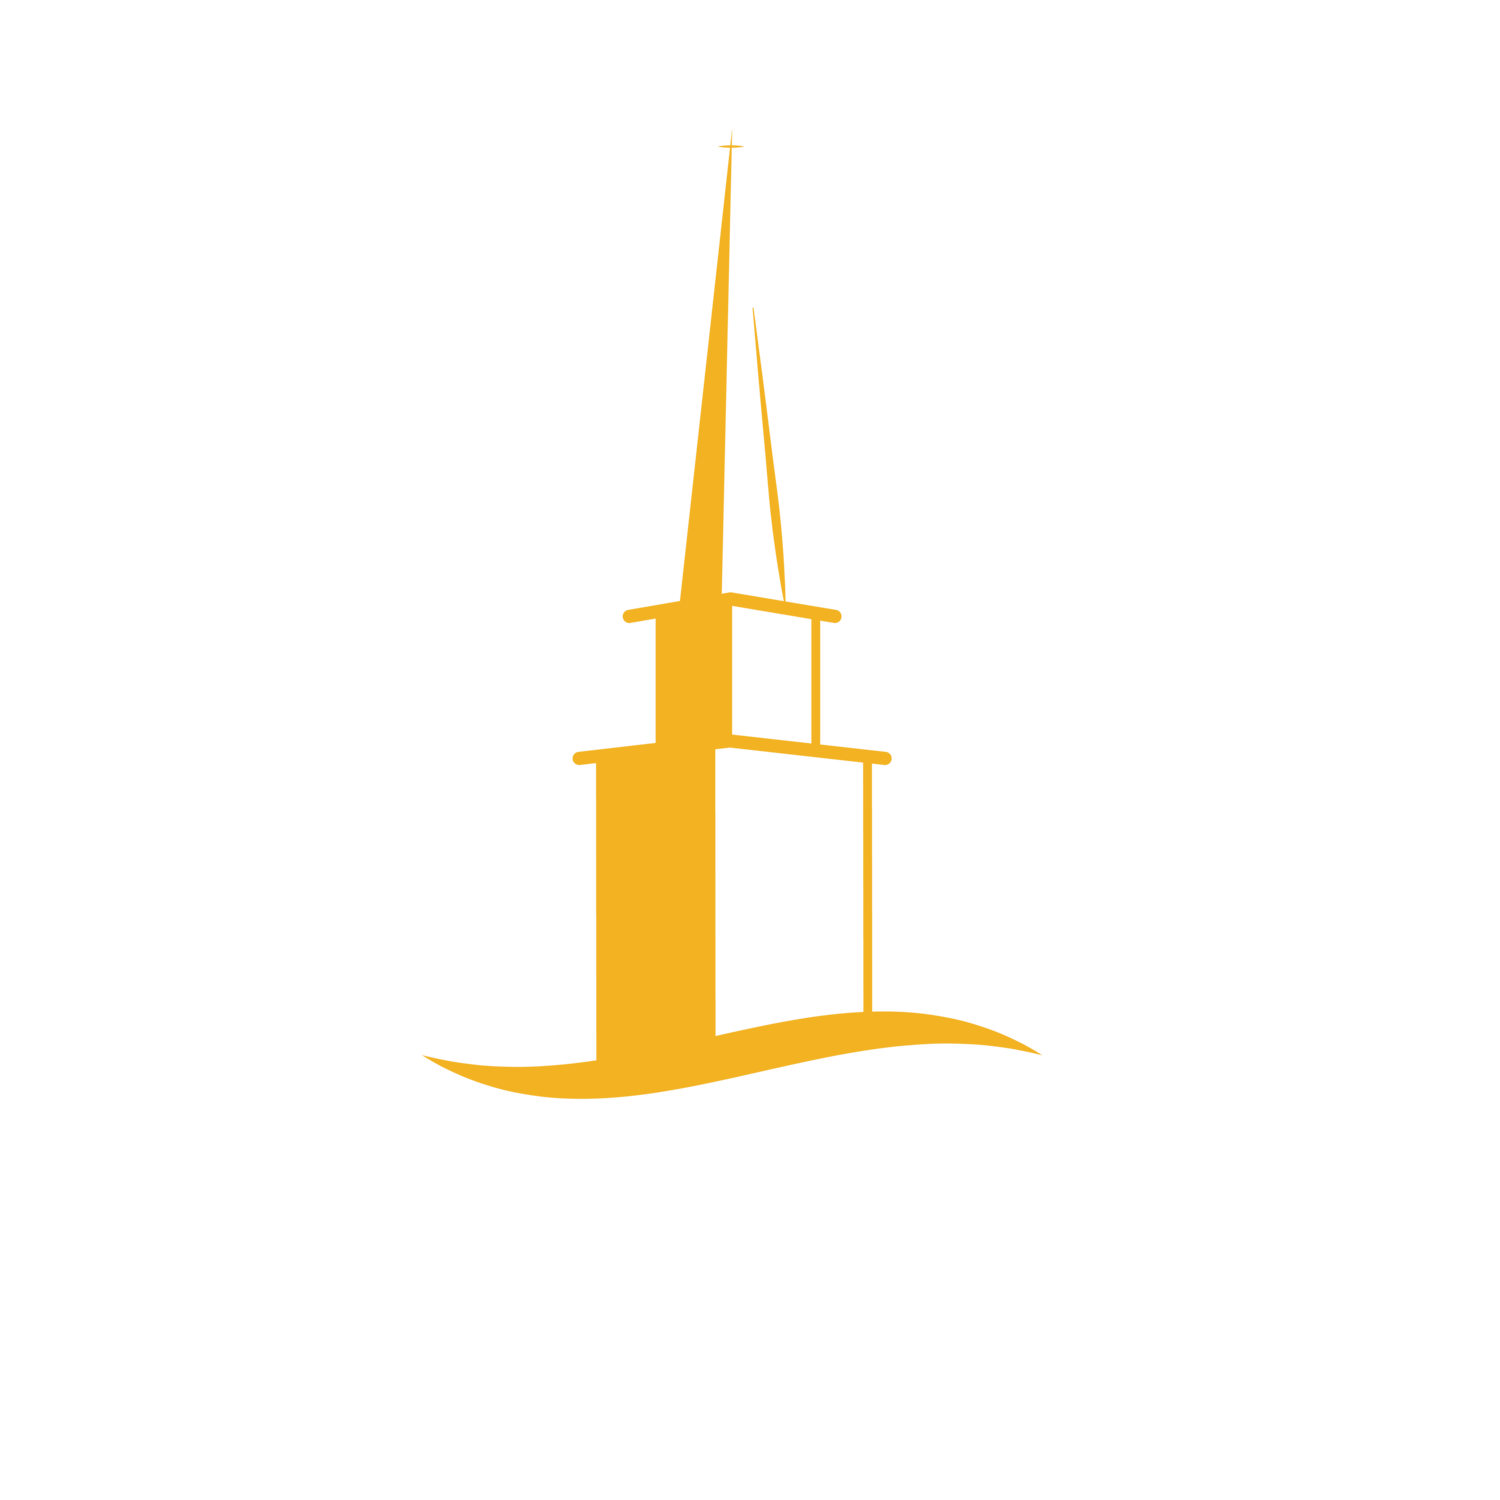 Discipleship — Eastern Shore Baptist Church